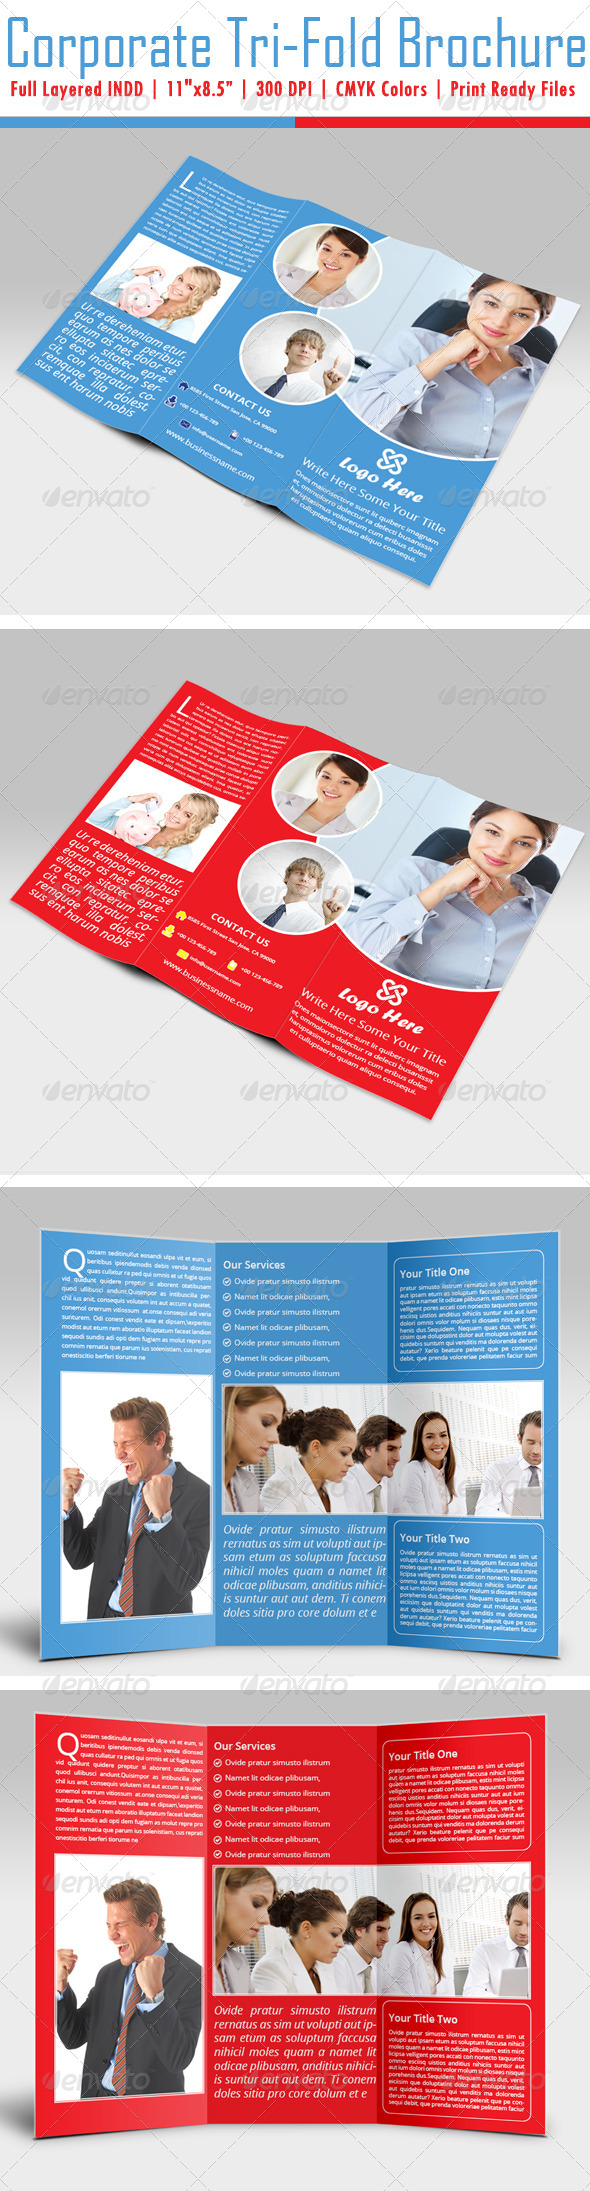 GraphicRiver Corporate Tri-Fold Brochure 4856792